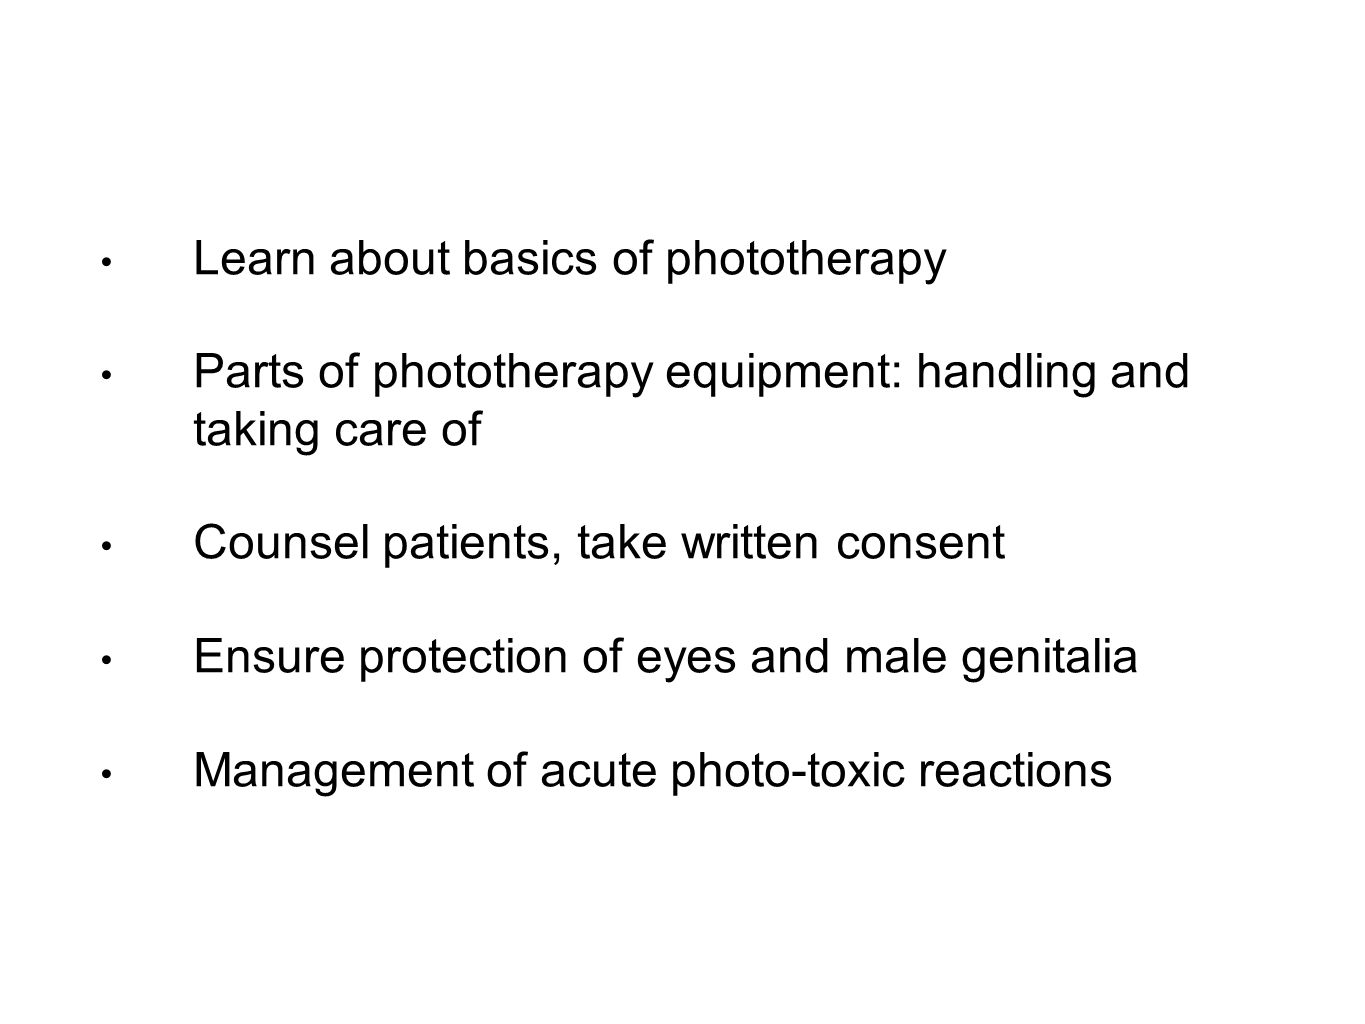 Learn about basics of phototherapy